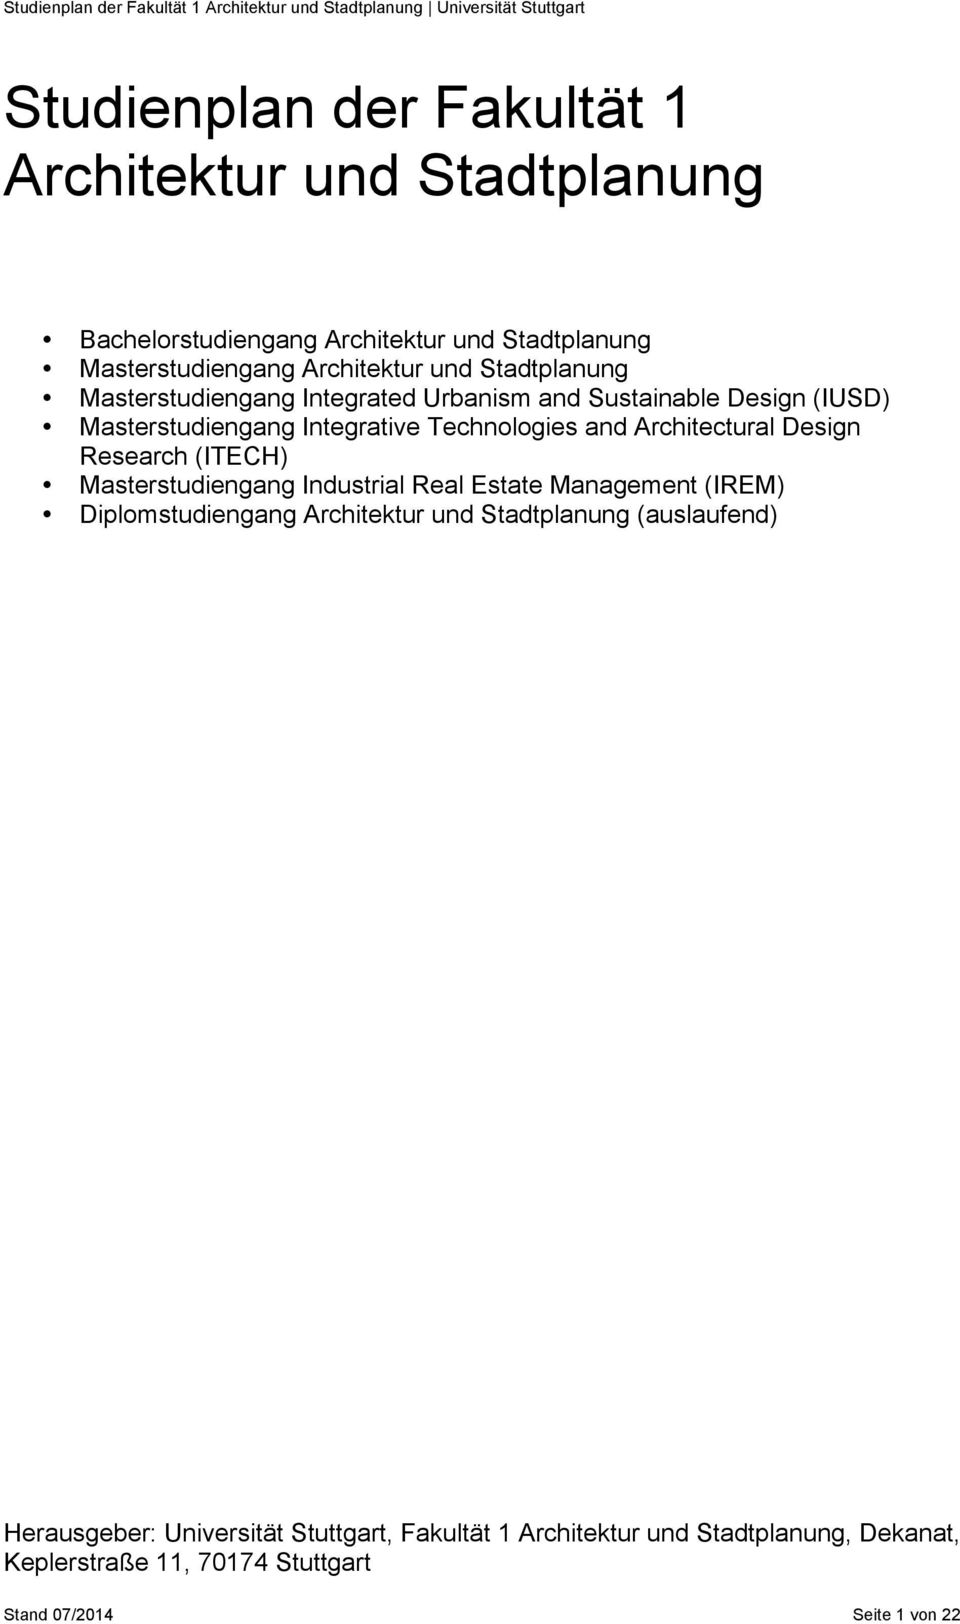 Design Research (ITECH) Masterstudiengang Industrial Real Estate Management (IREM) Diplomstudiengang Architektur und Stadtplanung (auslaufend)